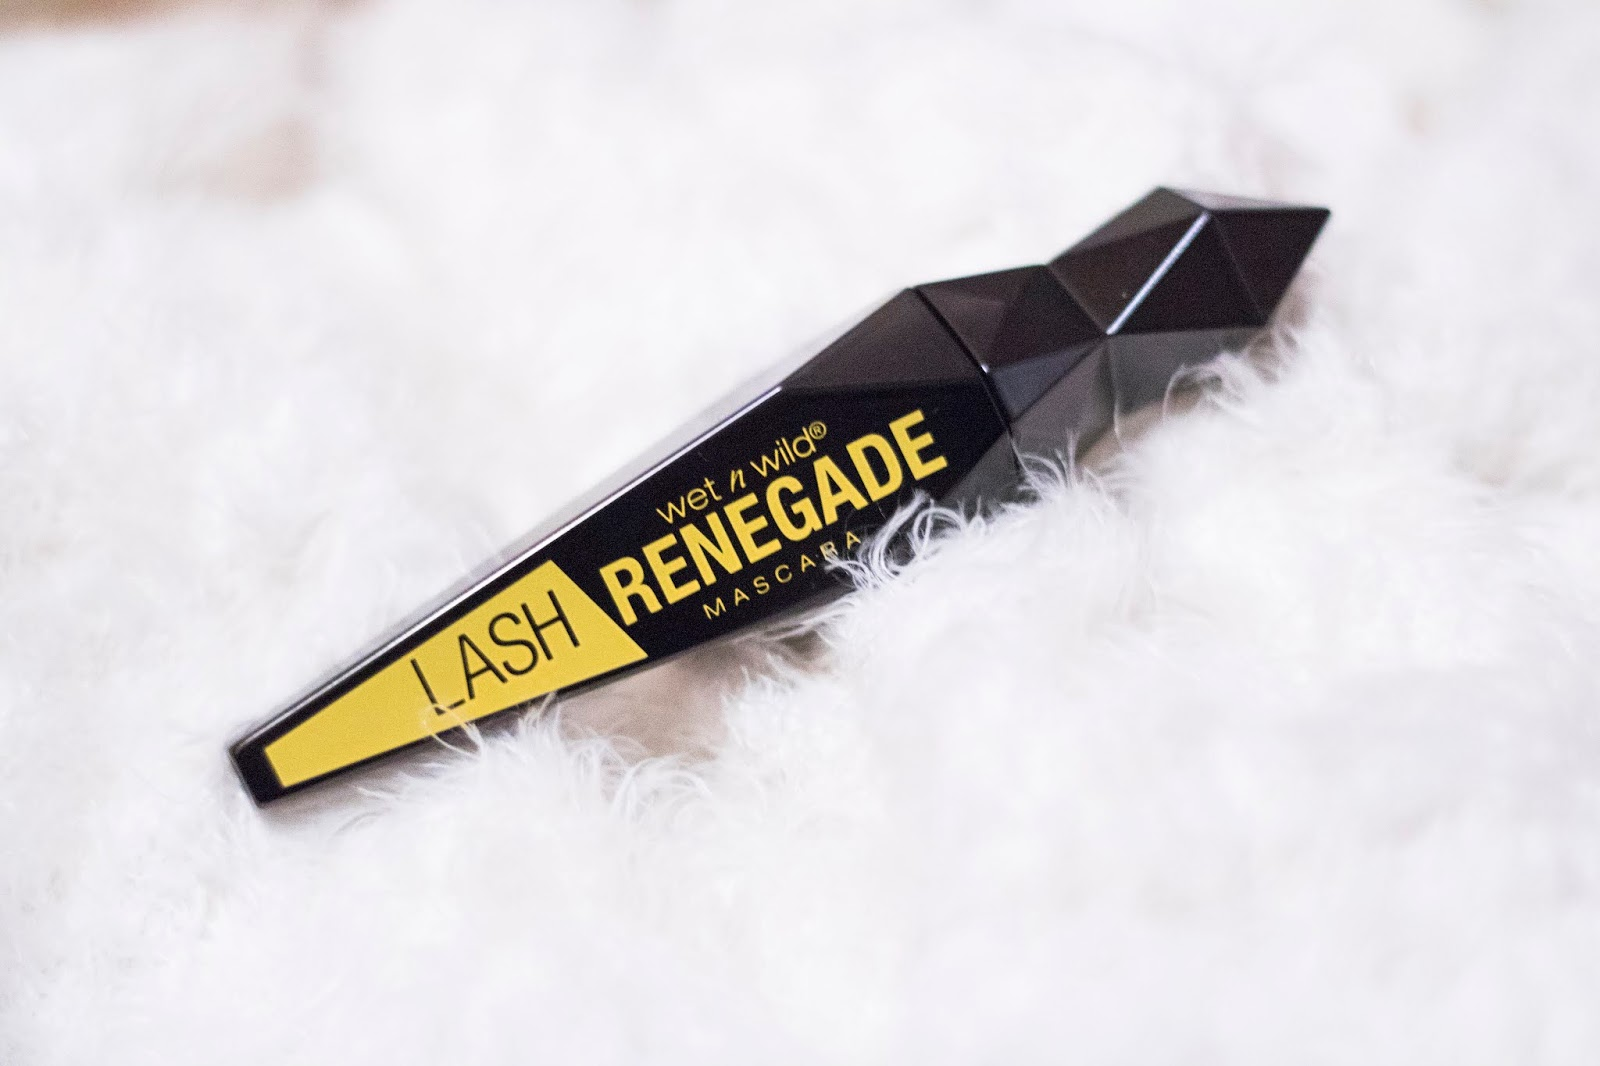 Wet n Wild, Lash Renegade Mascara